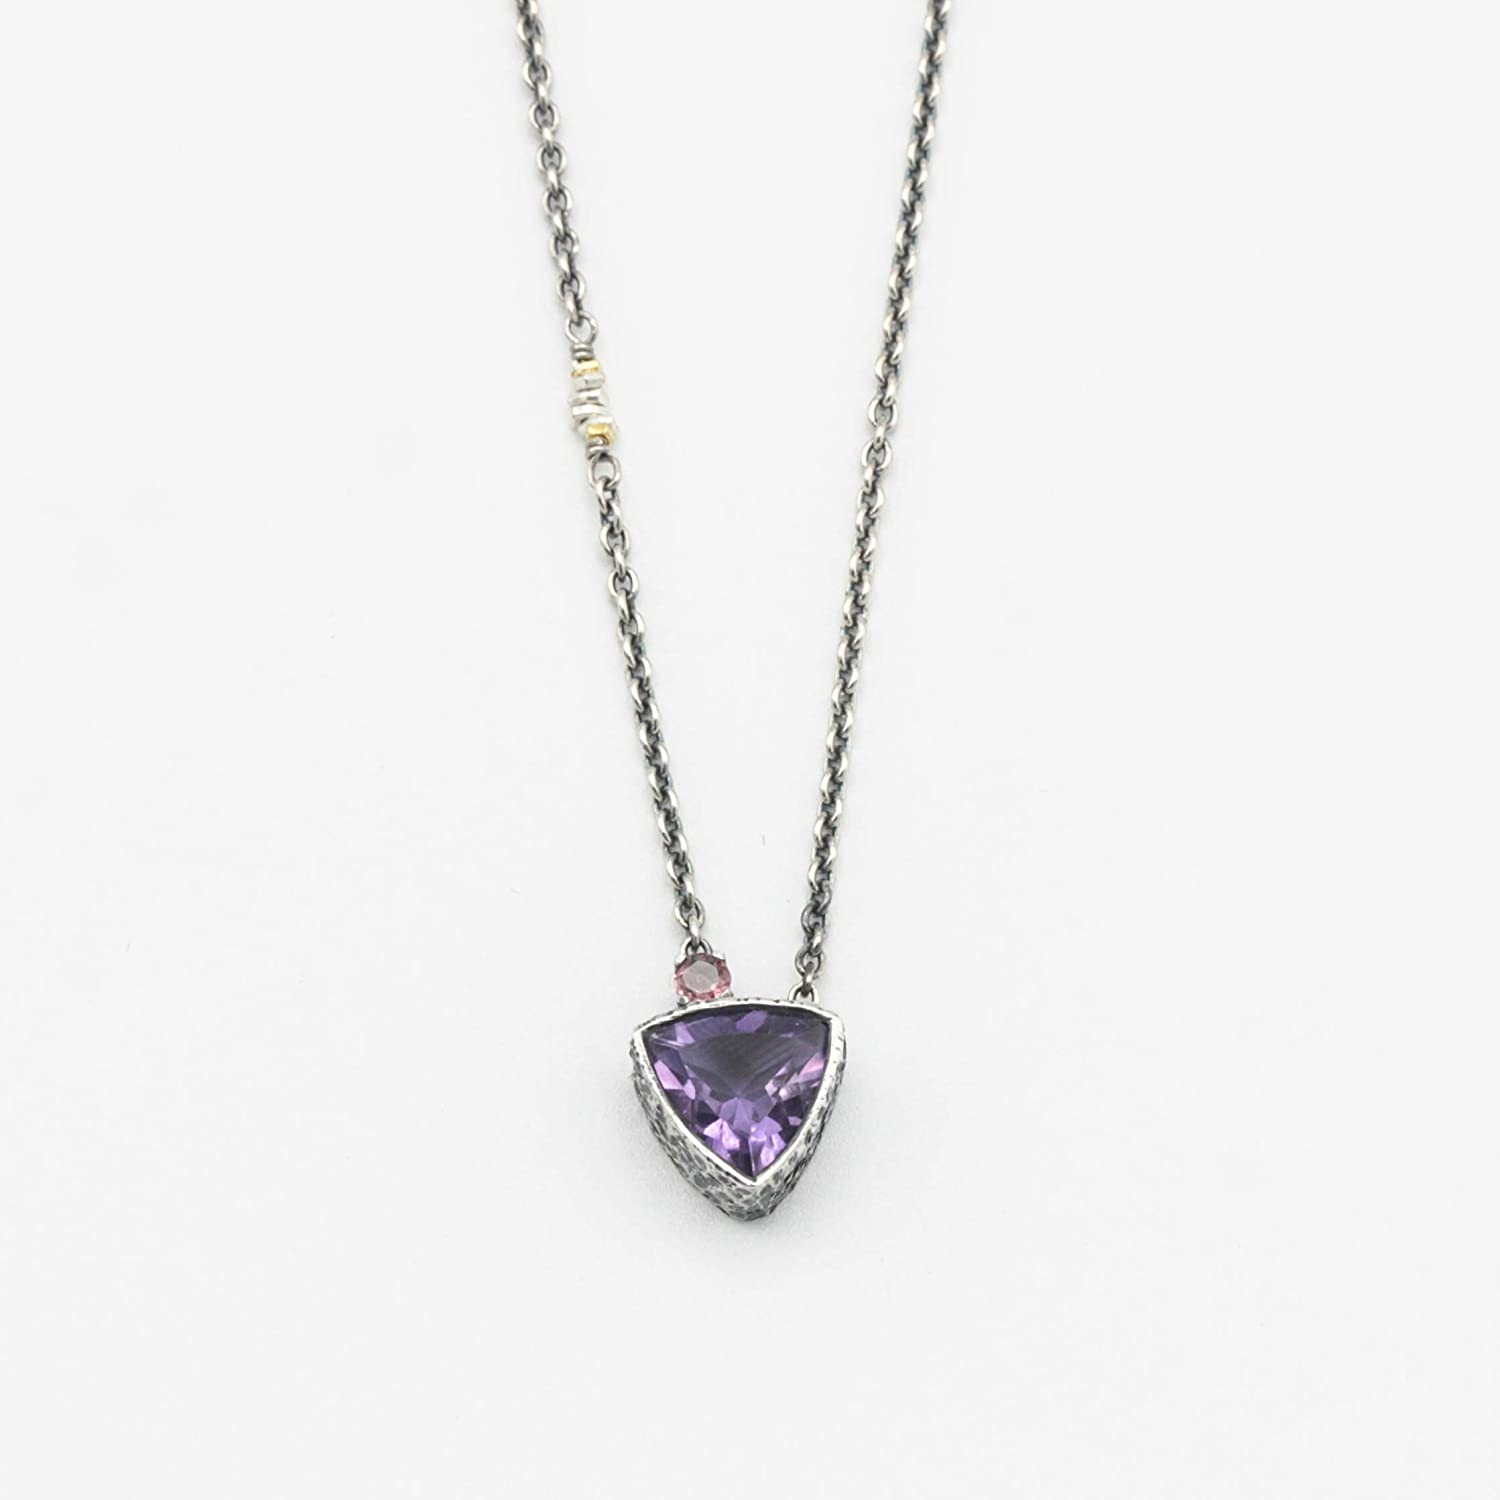 Trillion faceted amethyst pendant necklace setti bezel Quality inspection silver in Topics on TV